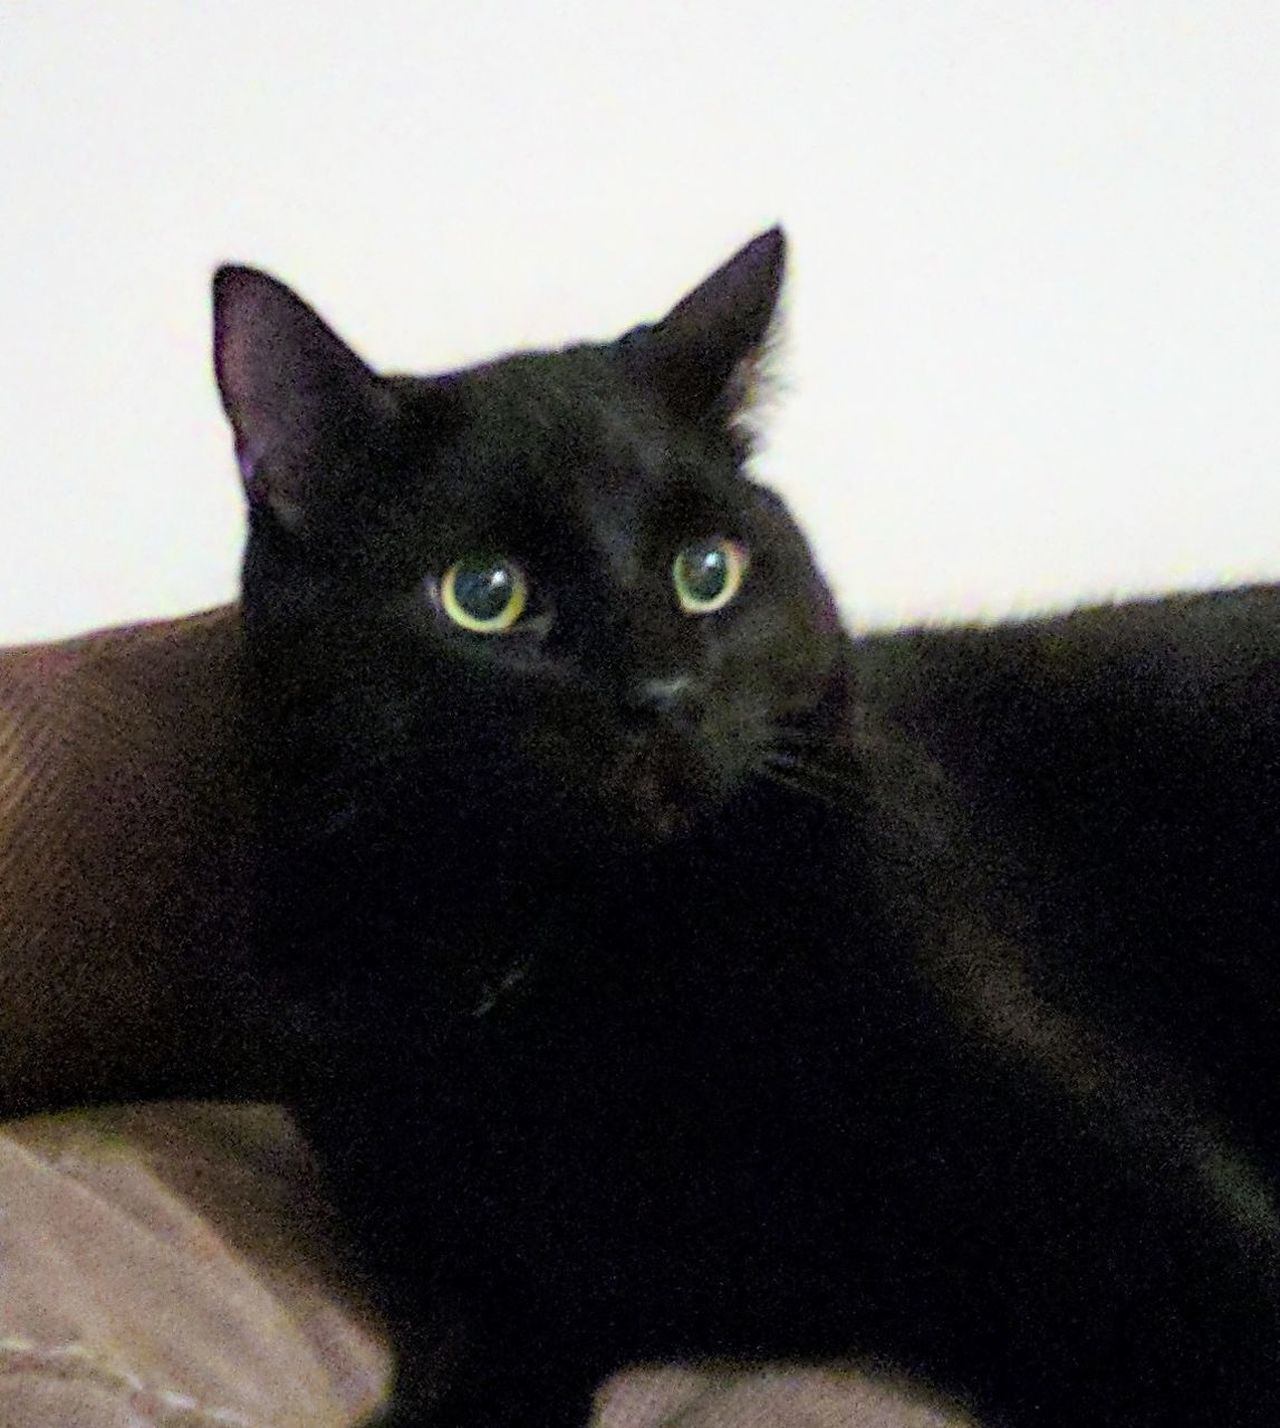 One Animal Pets Domestic Animals Domestic Cat Looking At Camera Black Color Portrait Indoors  No People Animal Themes Sitting Mammal Close-up Day Feline Black Cat Black Cats Are Beautiful Handsome